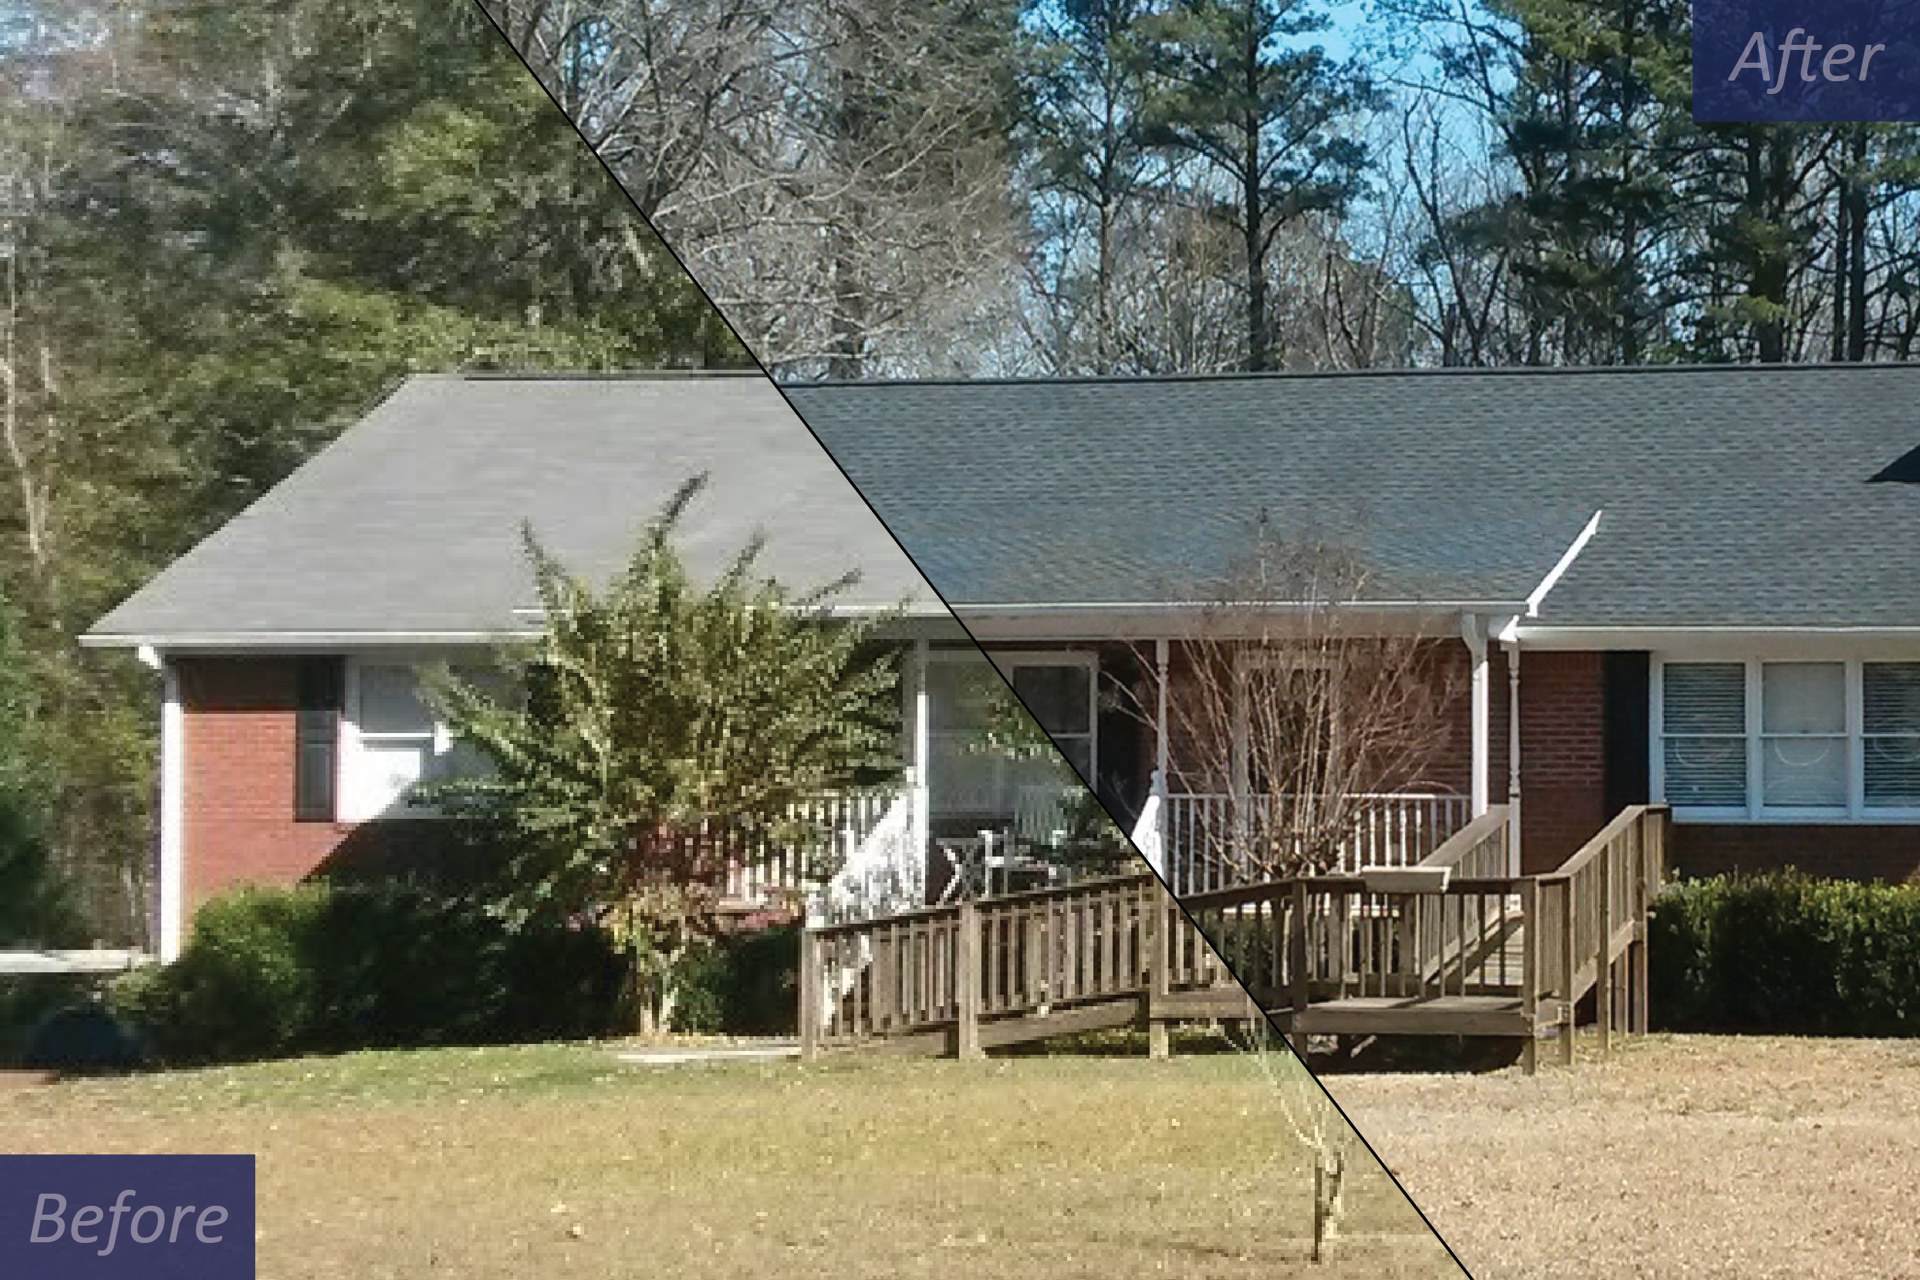 Mancilla Roofing Construction Roof Replacement Repair Home Electrical Wiring In Metro Atlanta Esystems Inc Cumming Ga 5